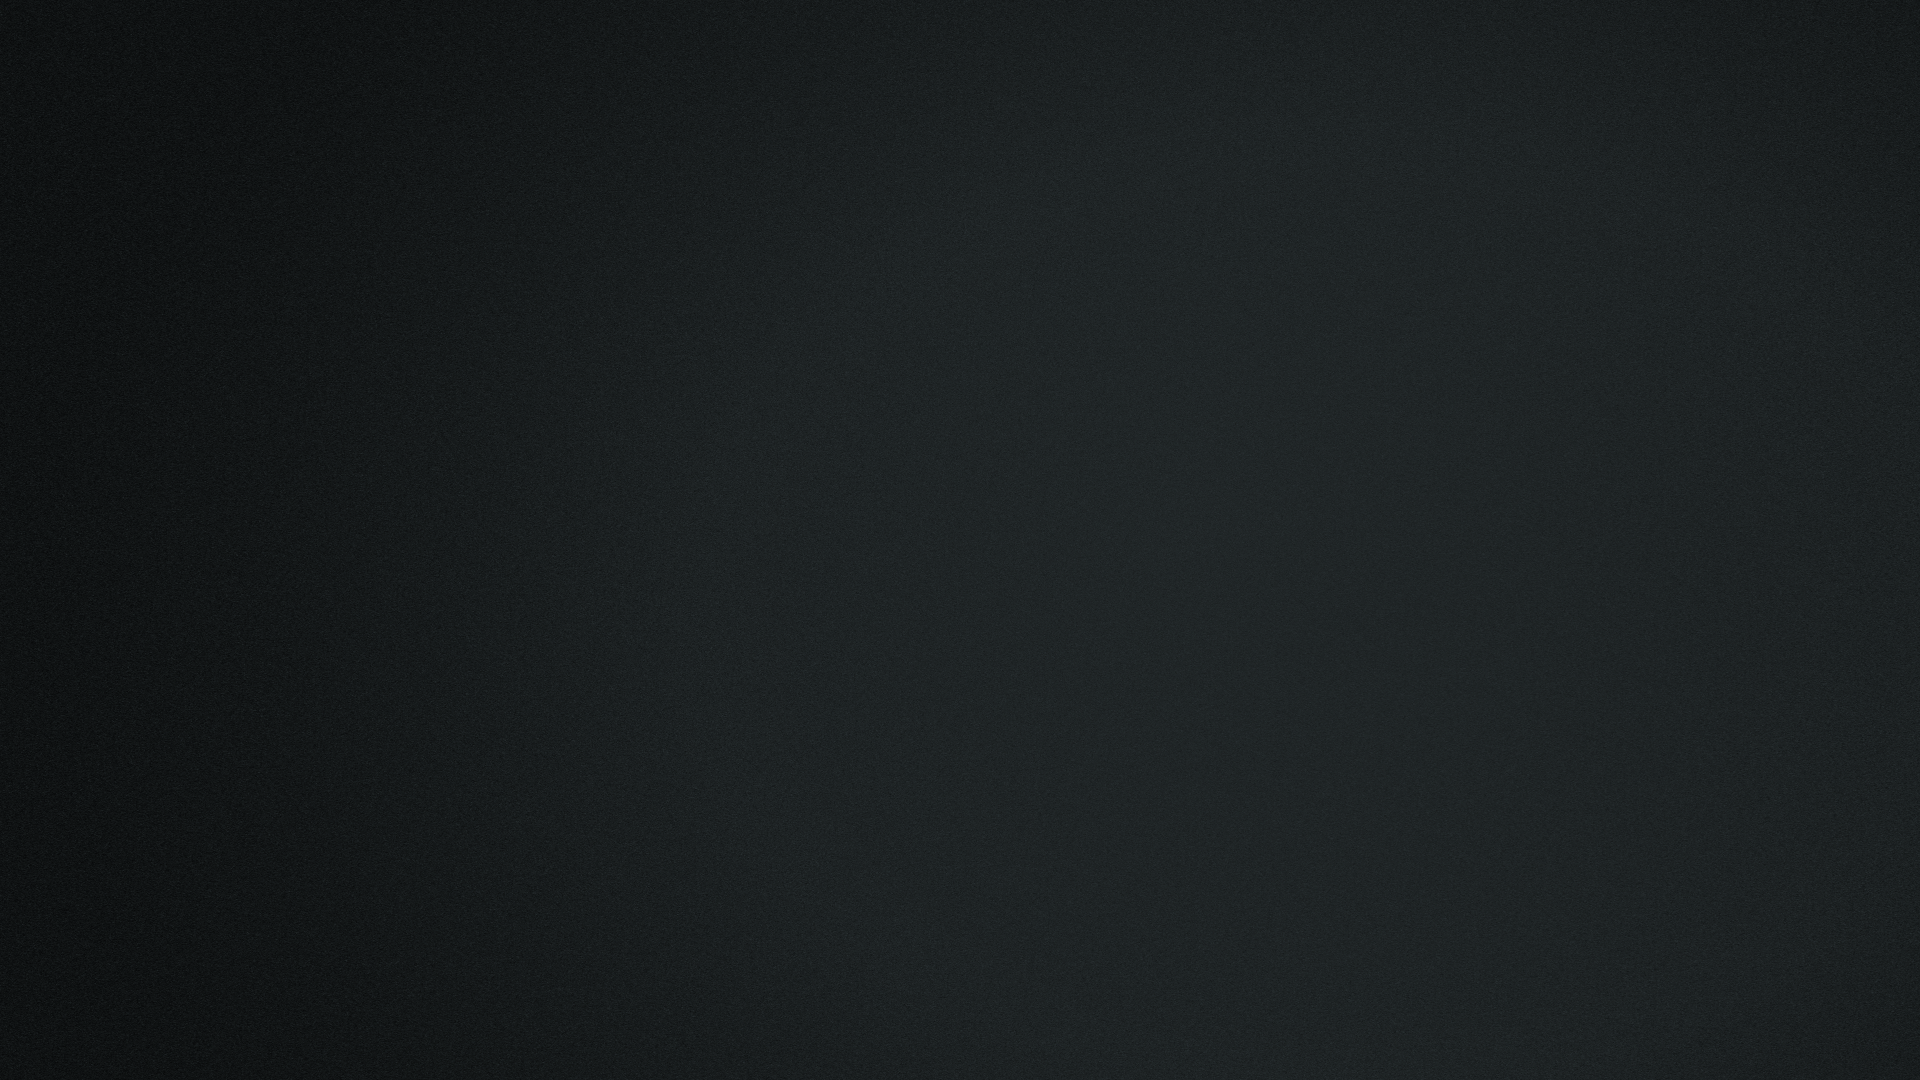 Blank Wallpapers Wallpaper Cave